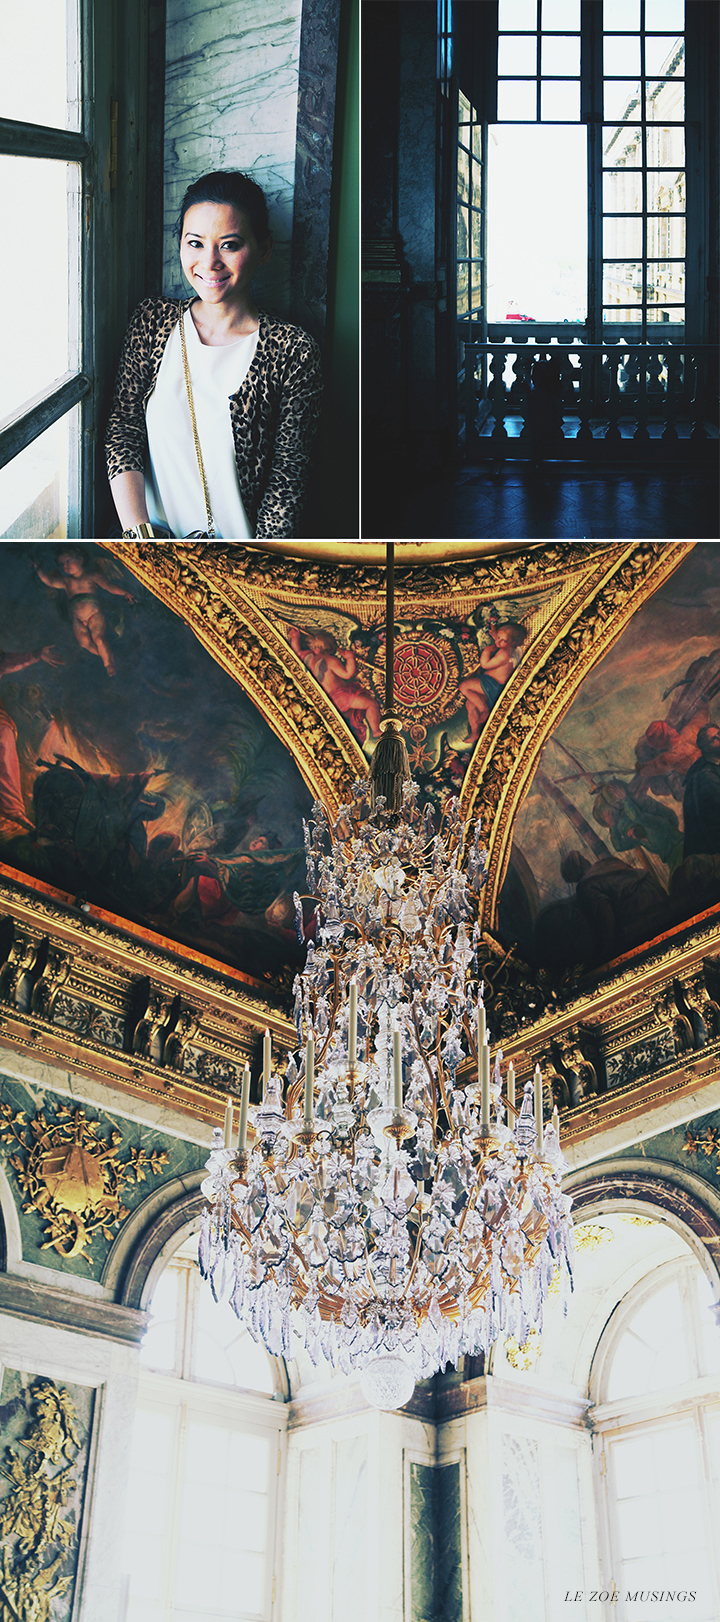 Palace of Versailles by Le Zoe Musings3